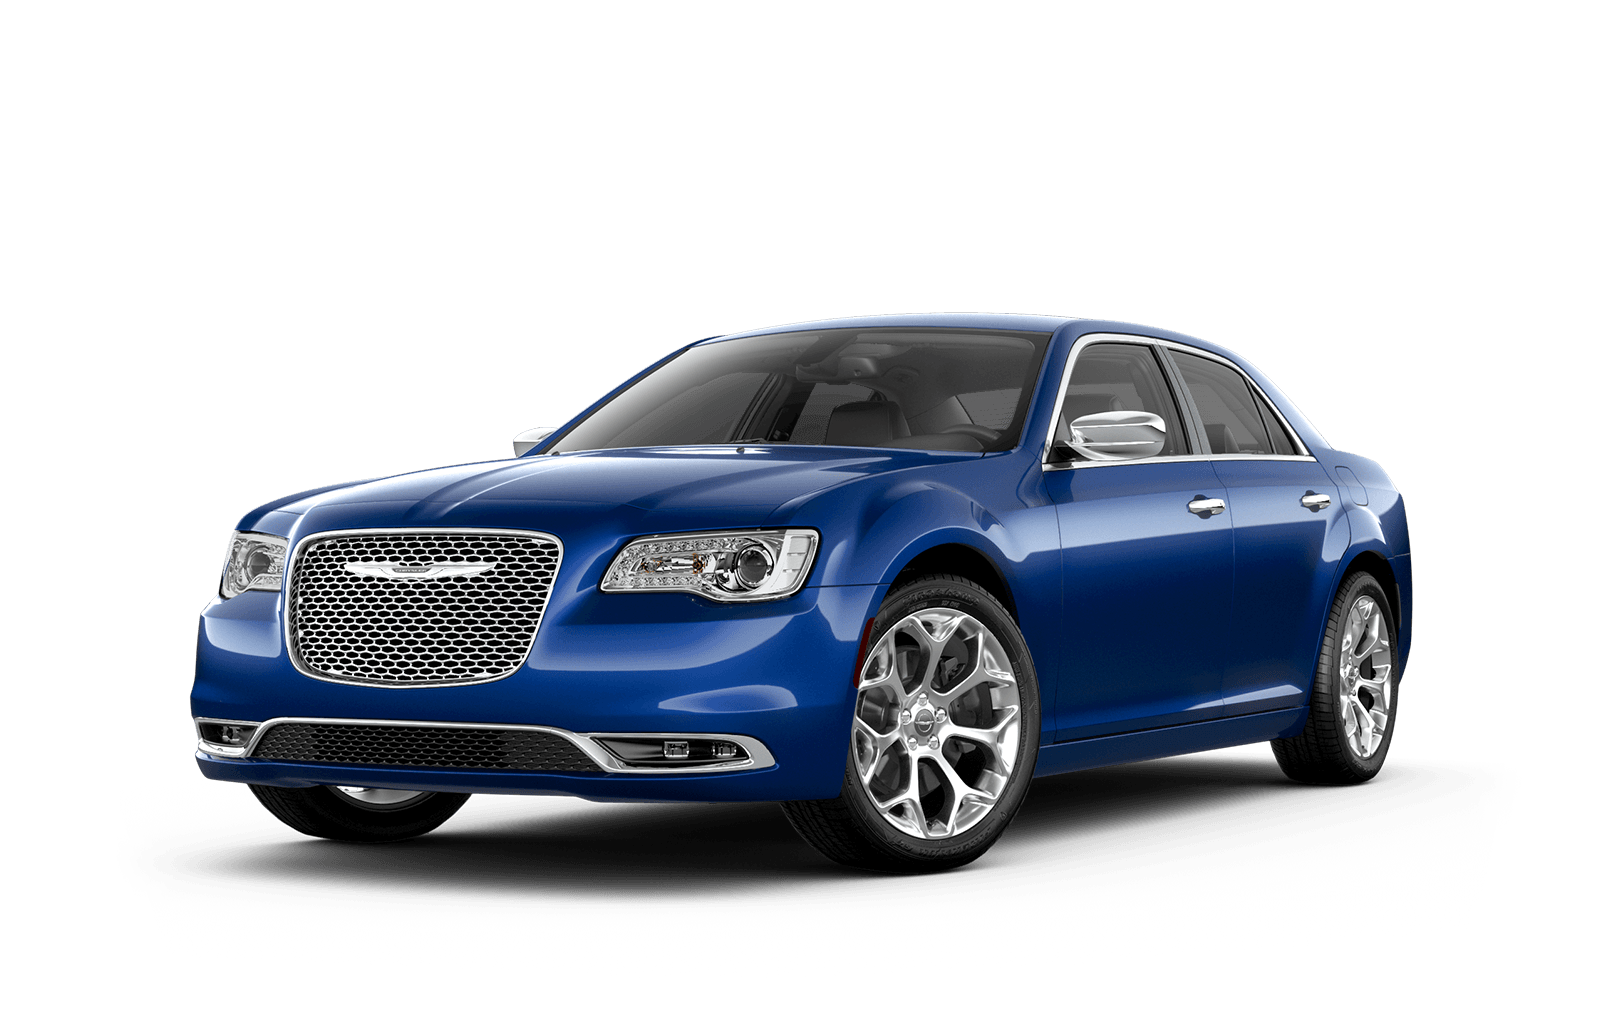 2019 Chrysler 300 Full View in Ocean Blue with Wheels